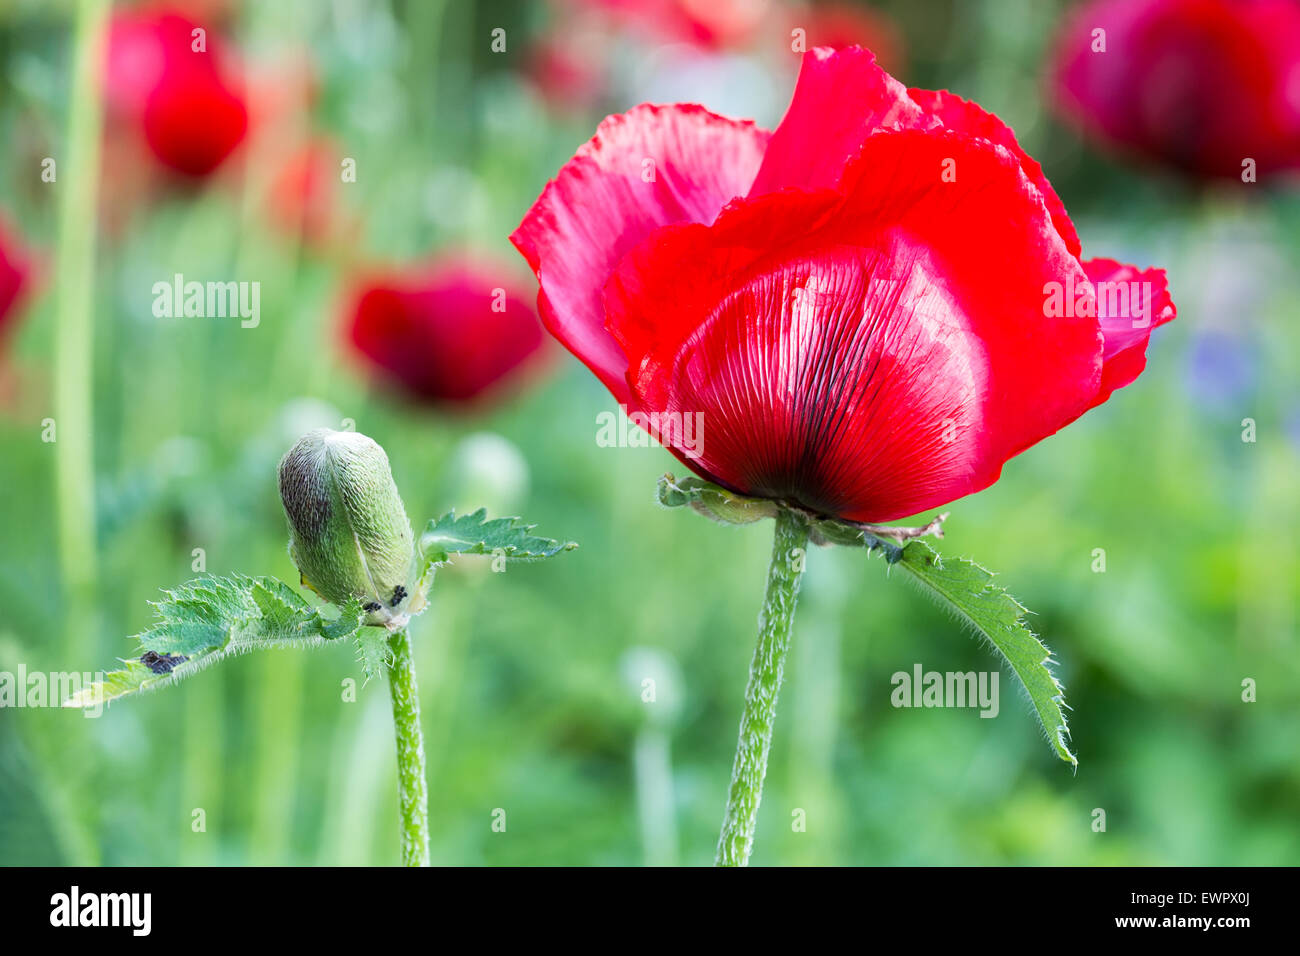 Red corn poppy with flower bud in summer season stock photo red corn poppy with flower bud in summer season dhlflorist Images